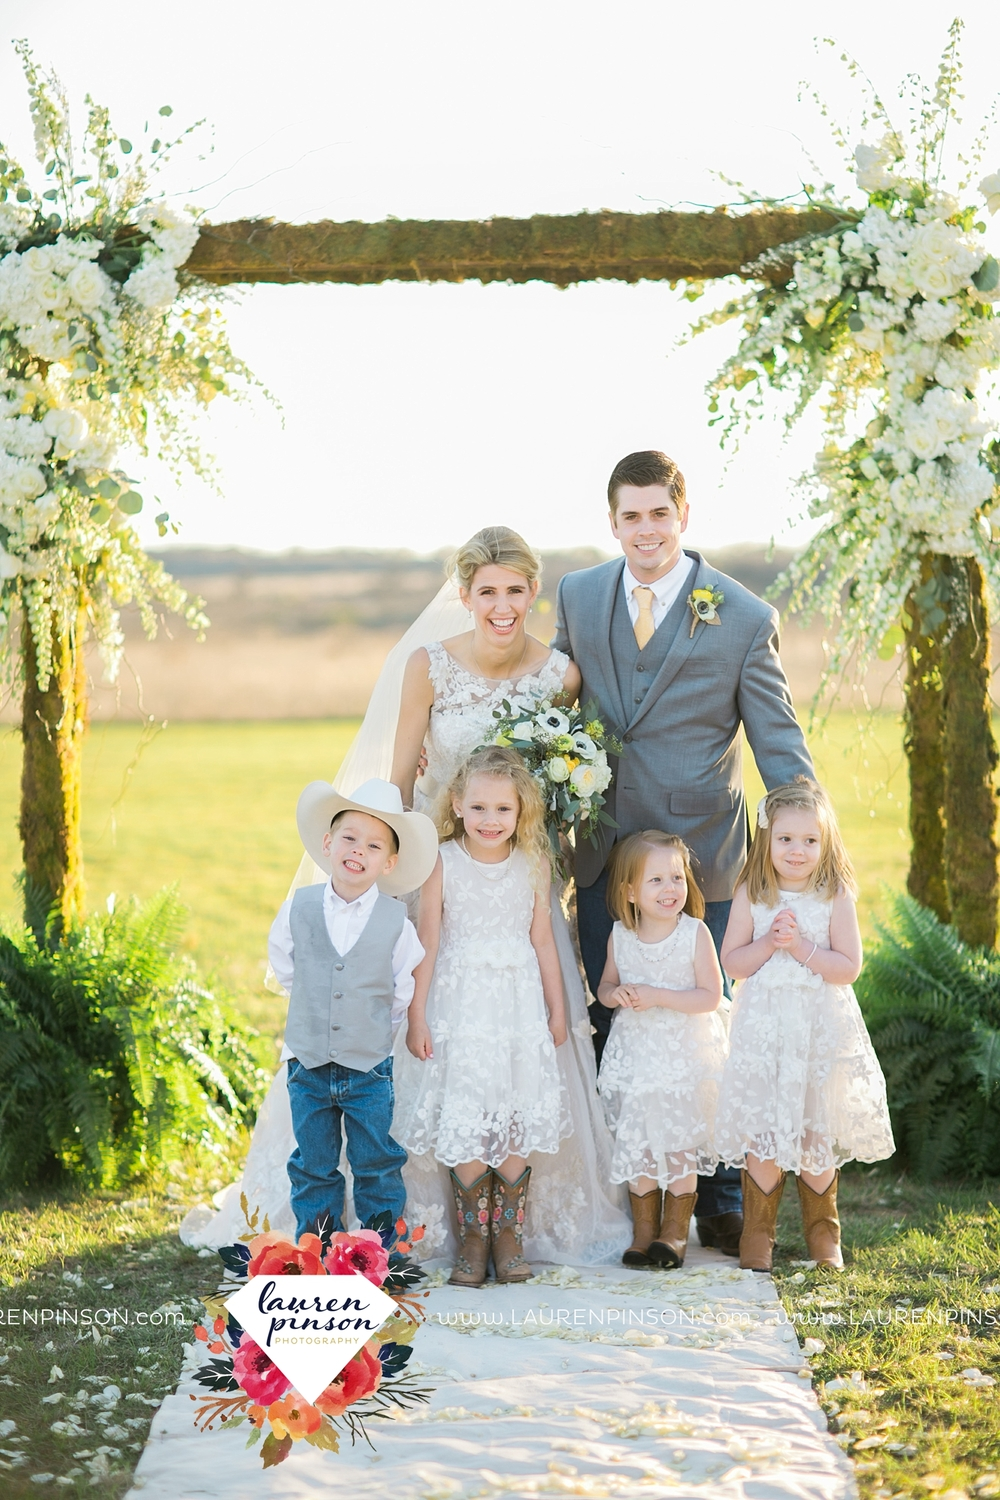 wichita-falls-texas-wedding-photographer-bowie-nocona-henrietta-country-barn-wedding_2193.jpg